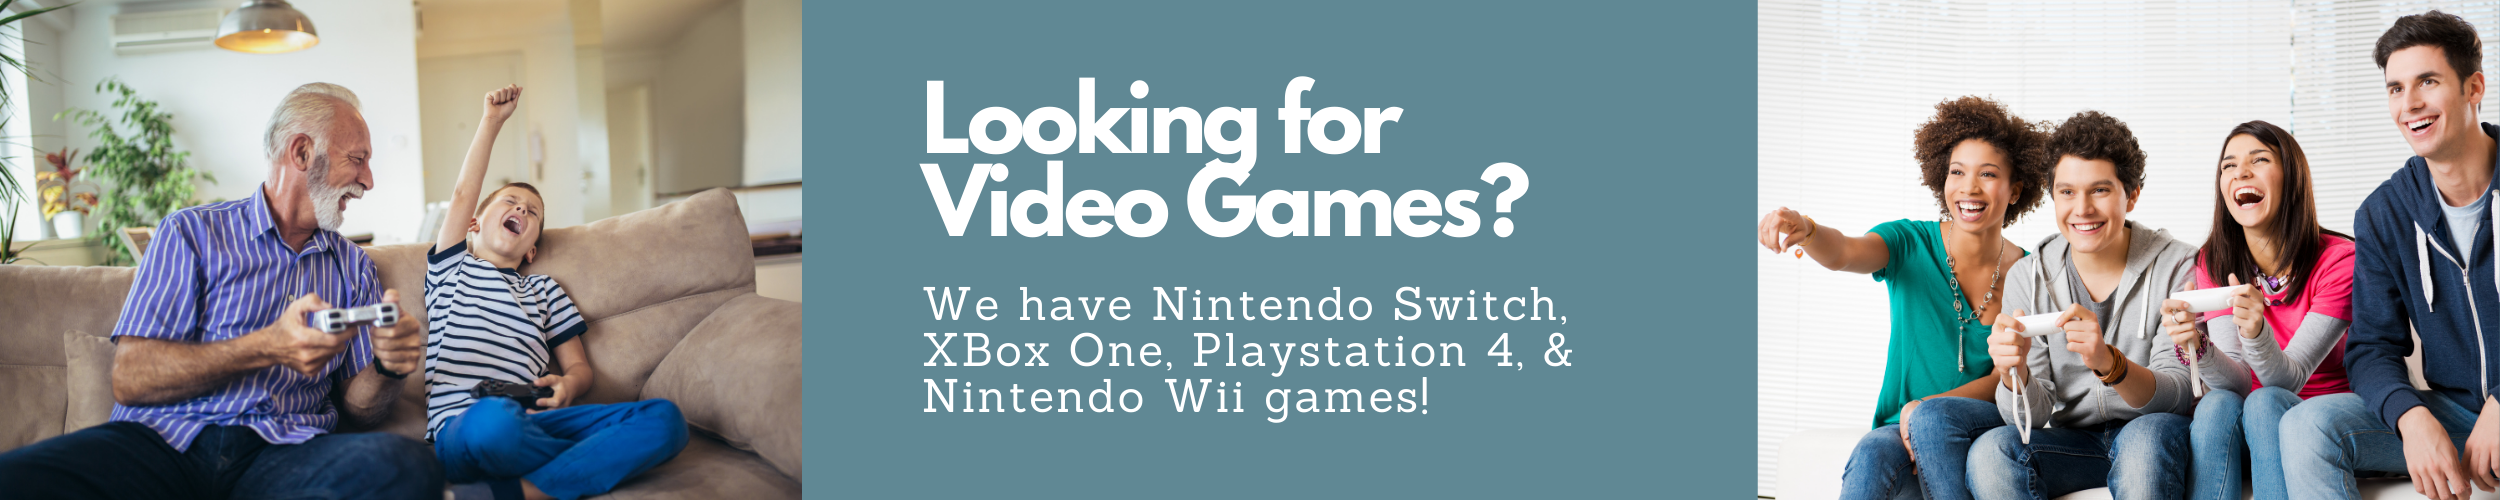 Looking for Video Games?